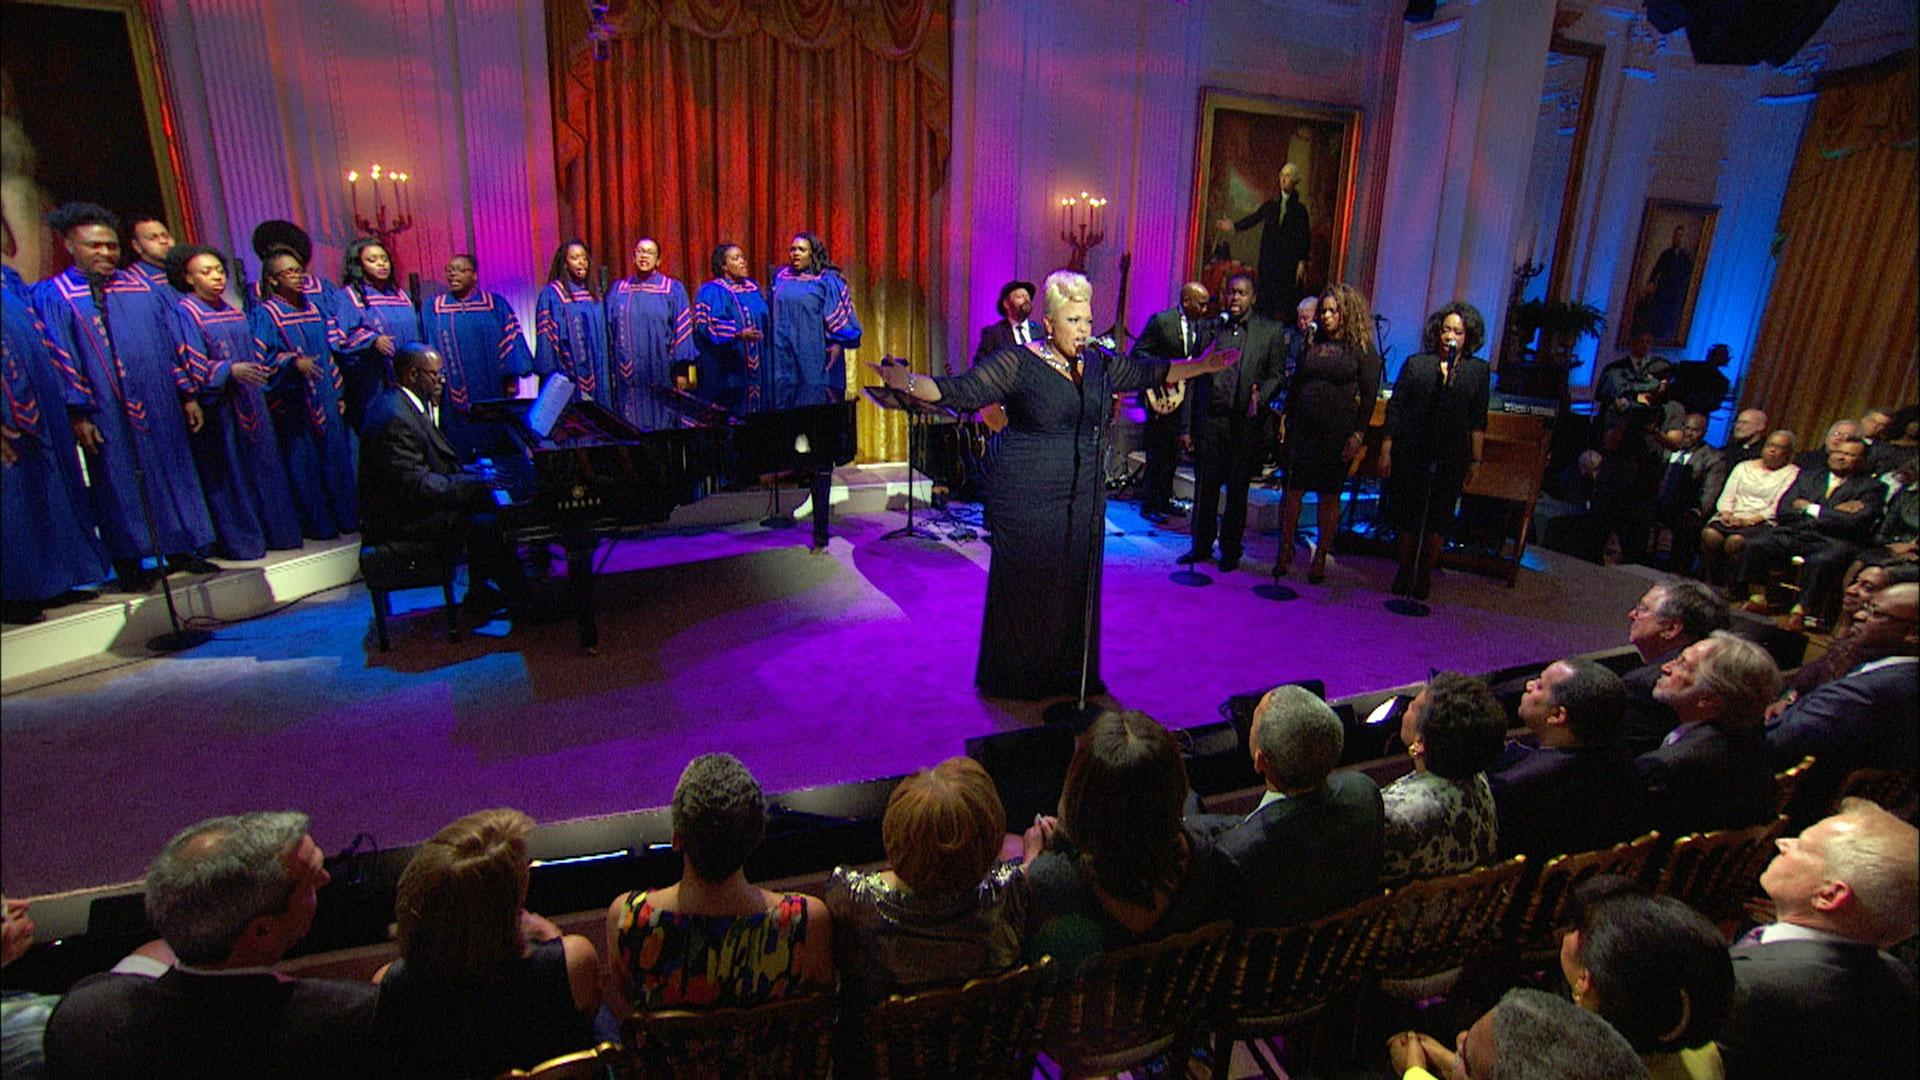 The Gospel Tradition: In Performance at the White House